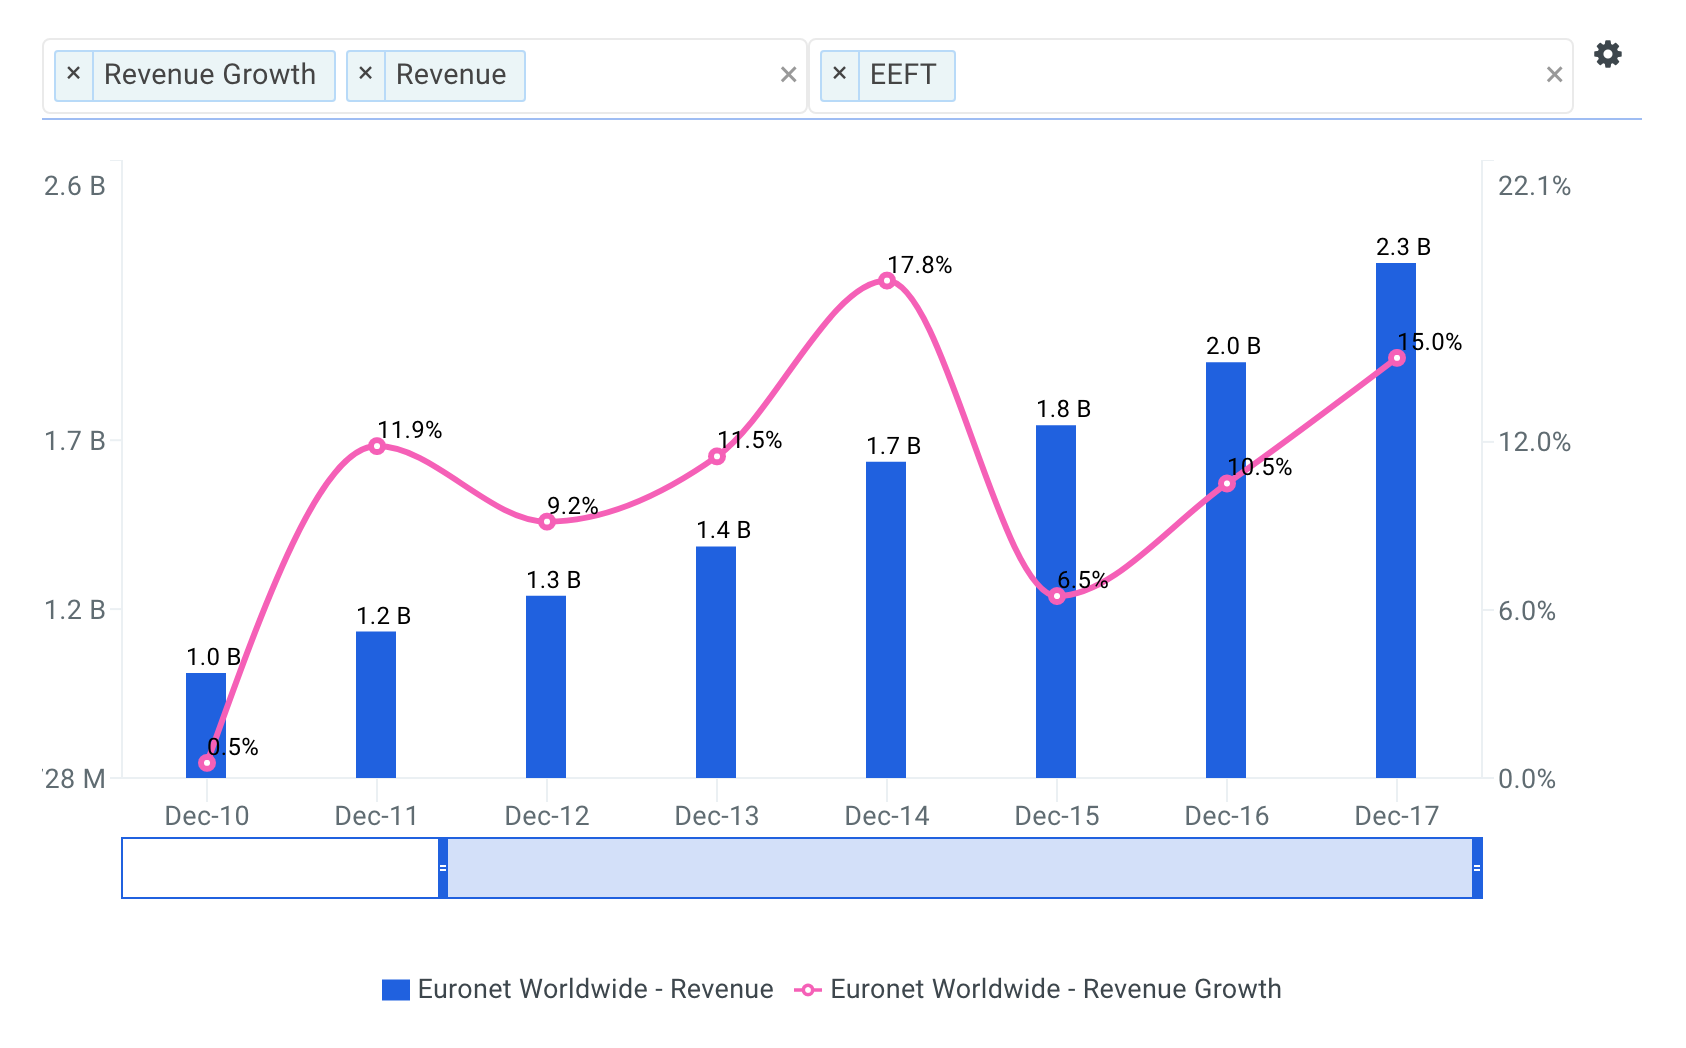 A Look At The Fair Value Of Euronet Worldwide, Inc. (NASDAQ: EEFT)